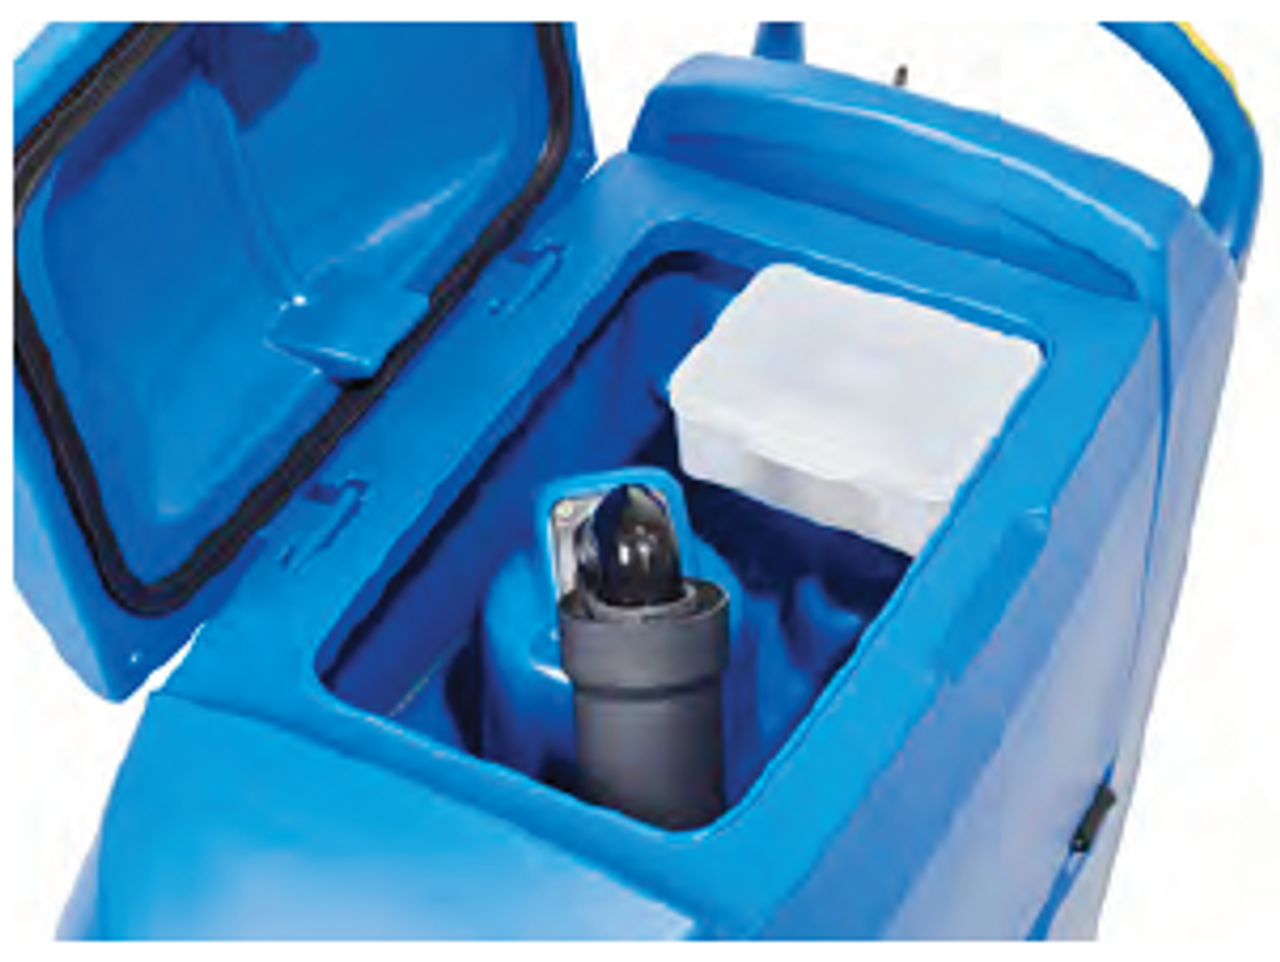 Fully accessible recovery tank with debris catch cage allows for simple cleanup